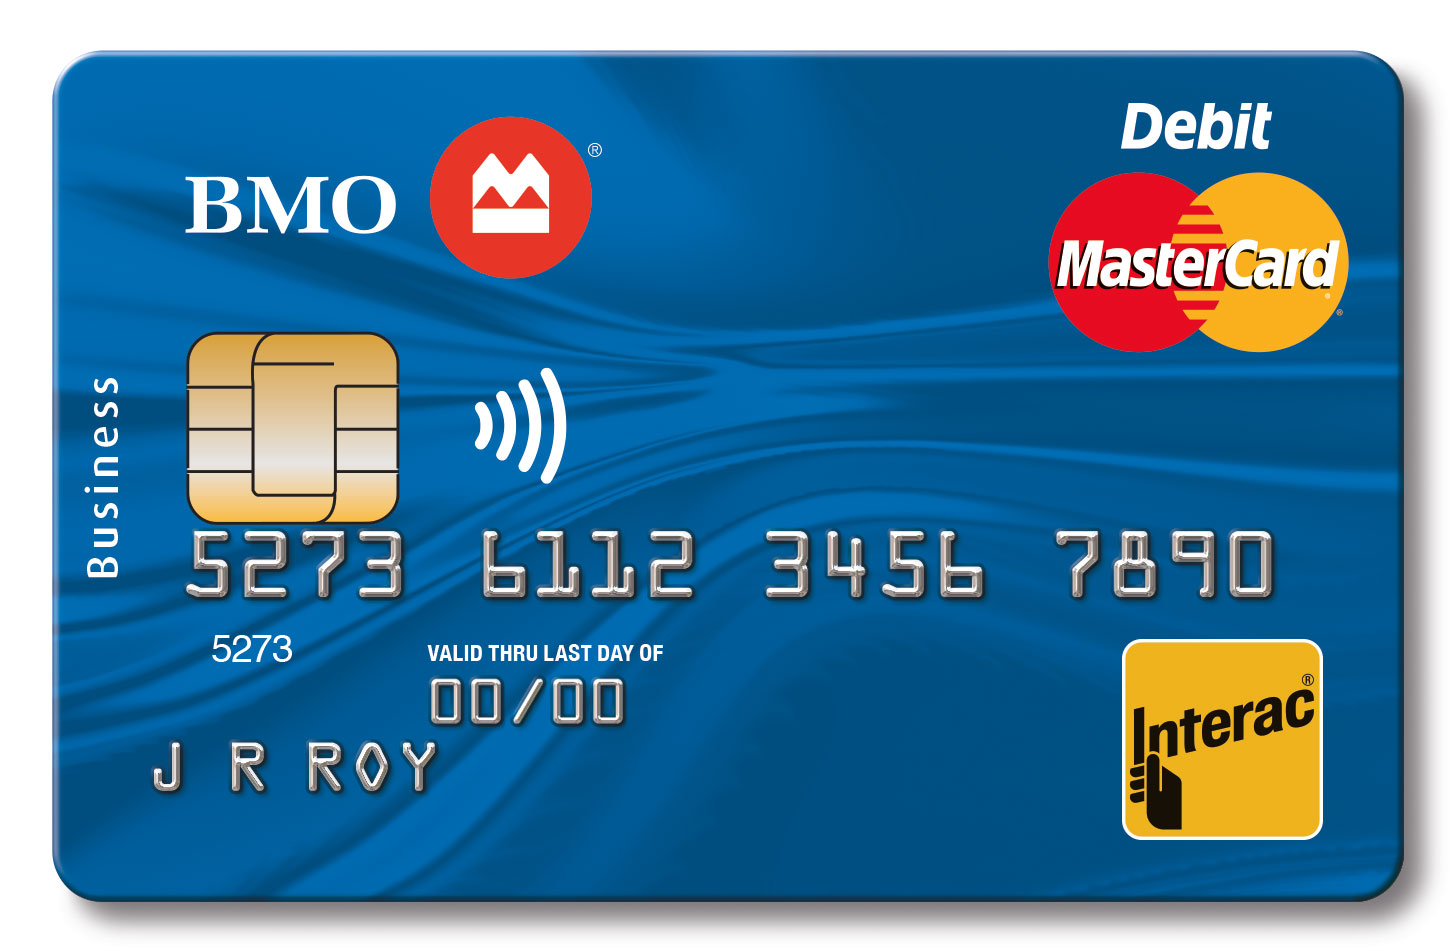 https://www.bmo.com/img/main/bank-accounts/small/bmo-business-debit-mastercard-en.jpg